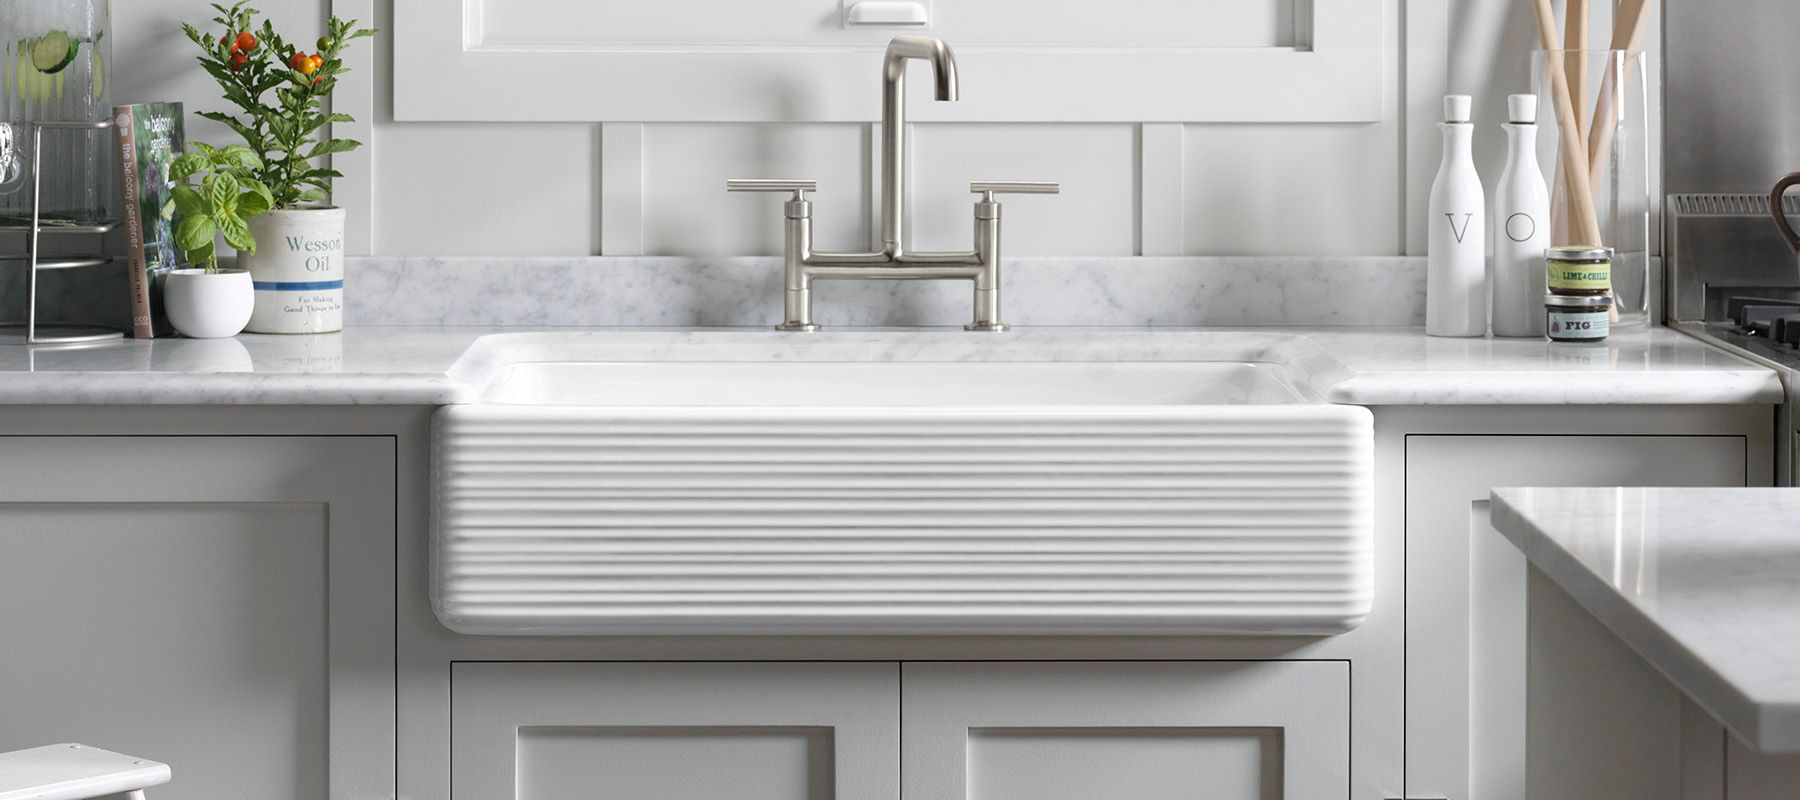 Kohler Top Mount Apron Front Sink